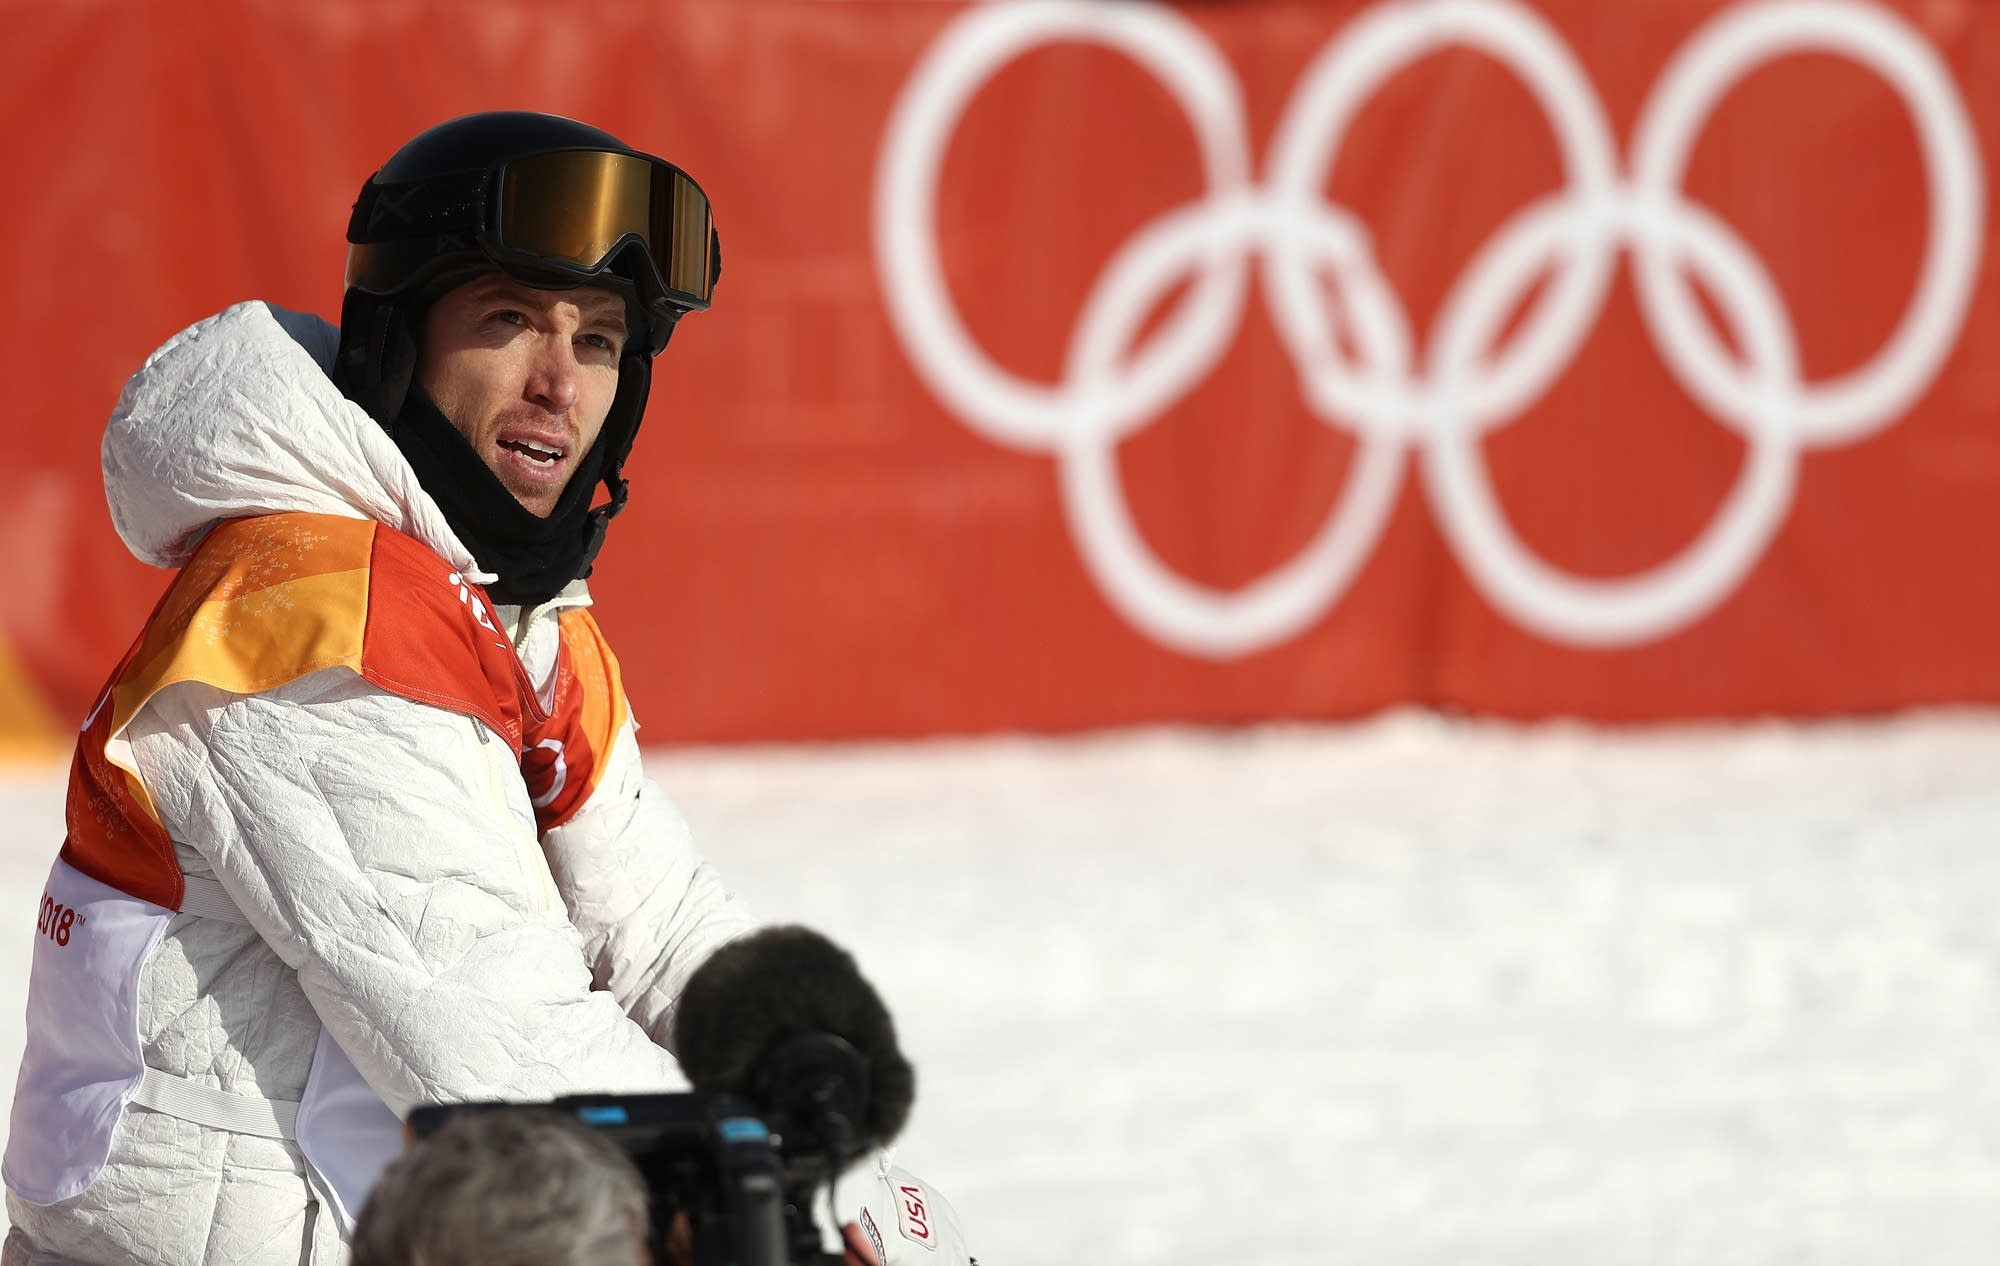 Things You Might Not Know About Olympic Gold Medalist Shaun White